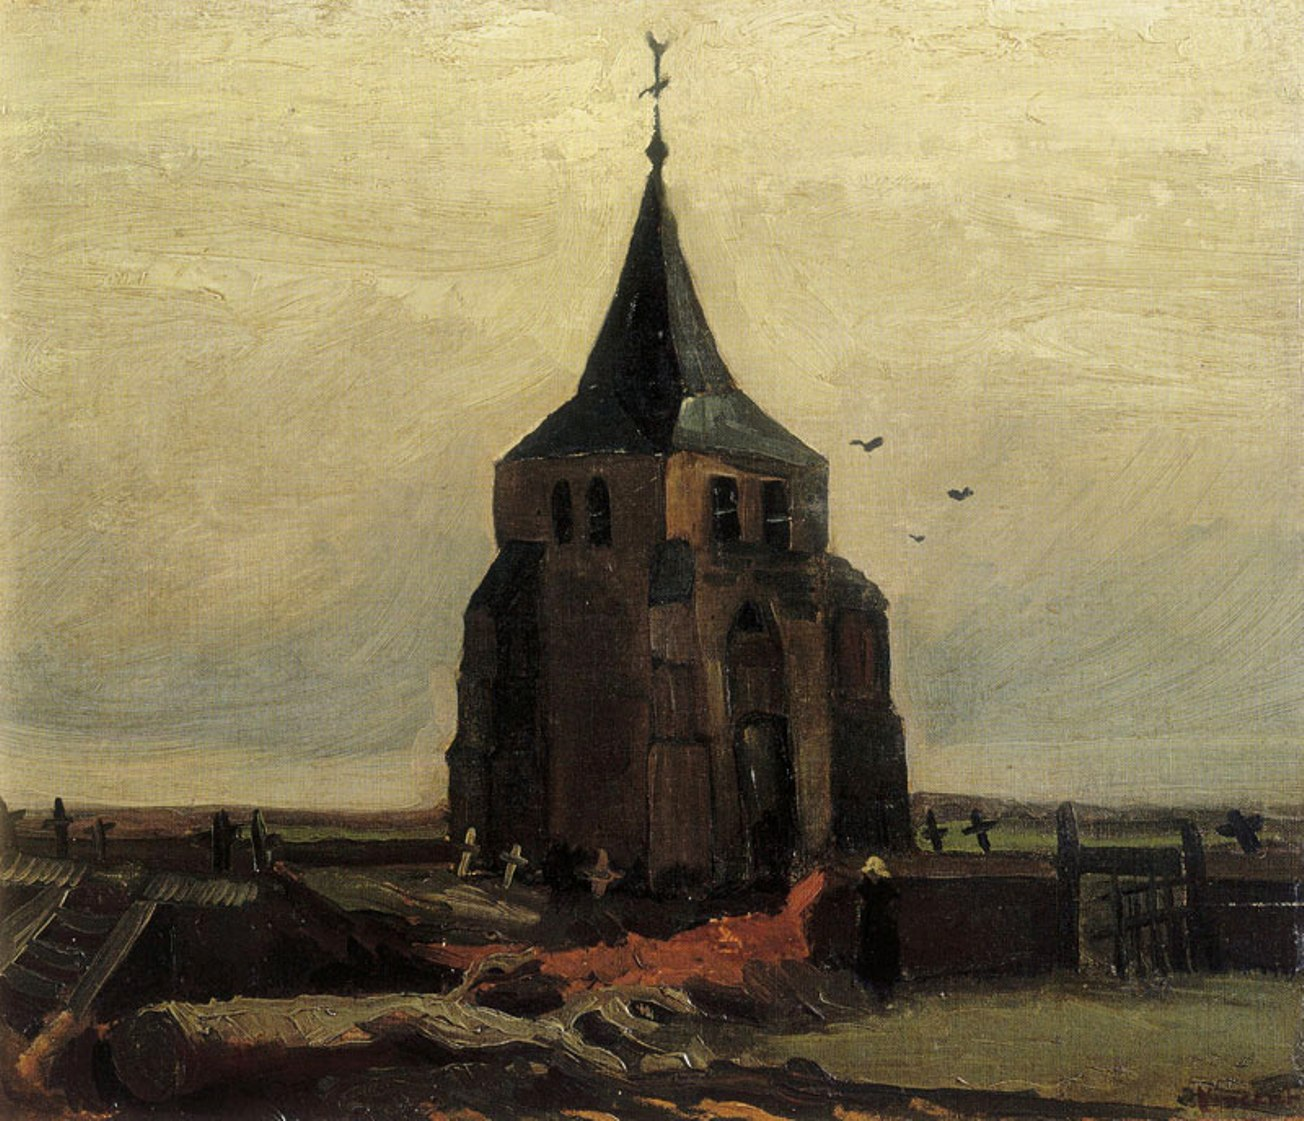 The Old Church Tower at Nuenen by Vincent van Gogh